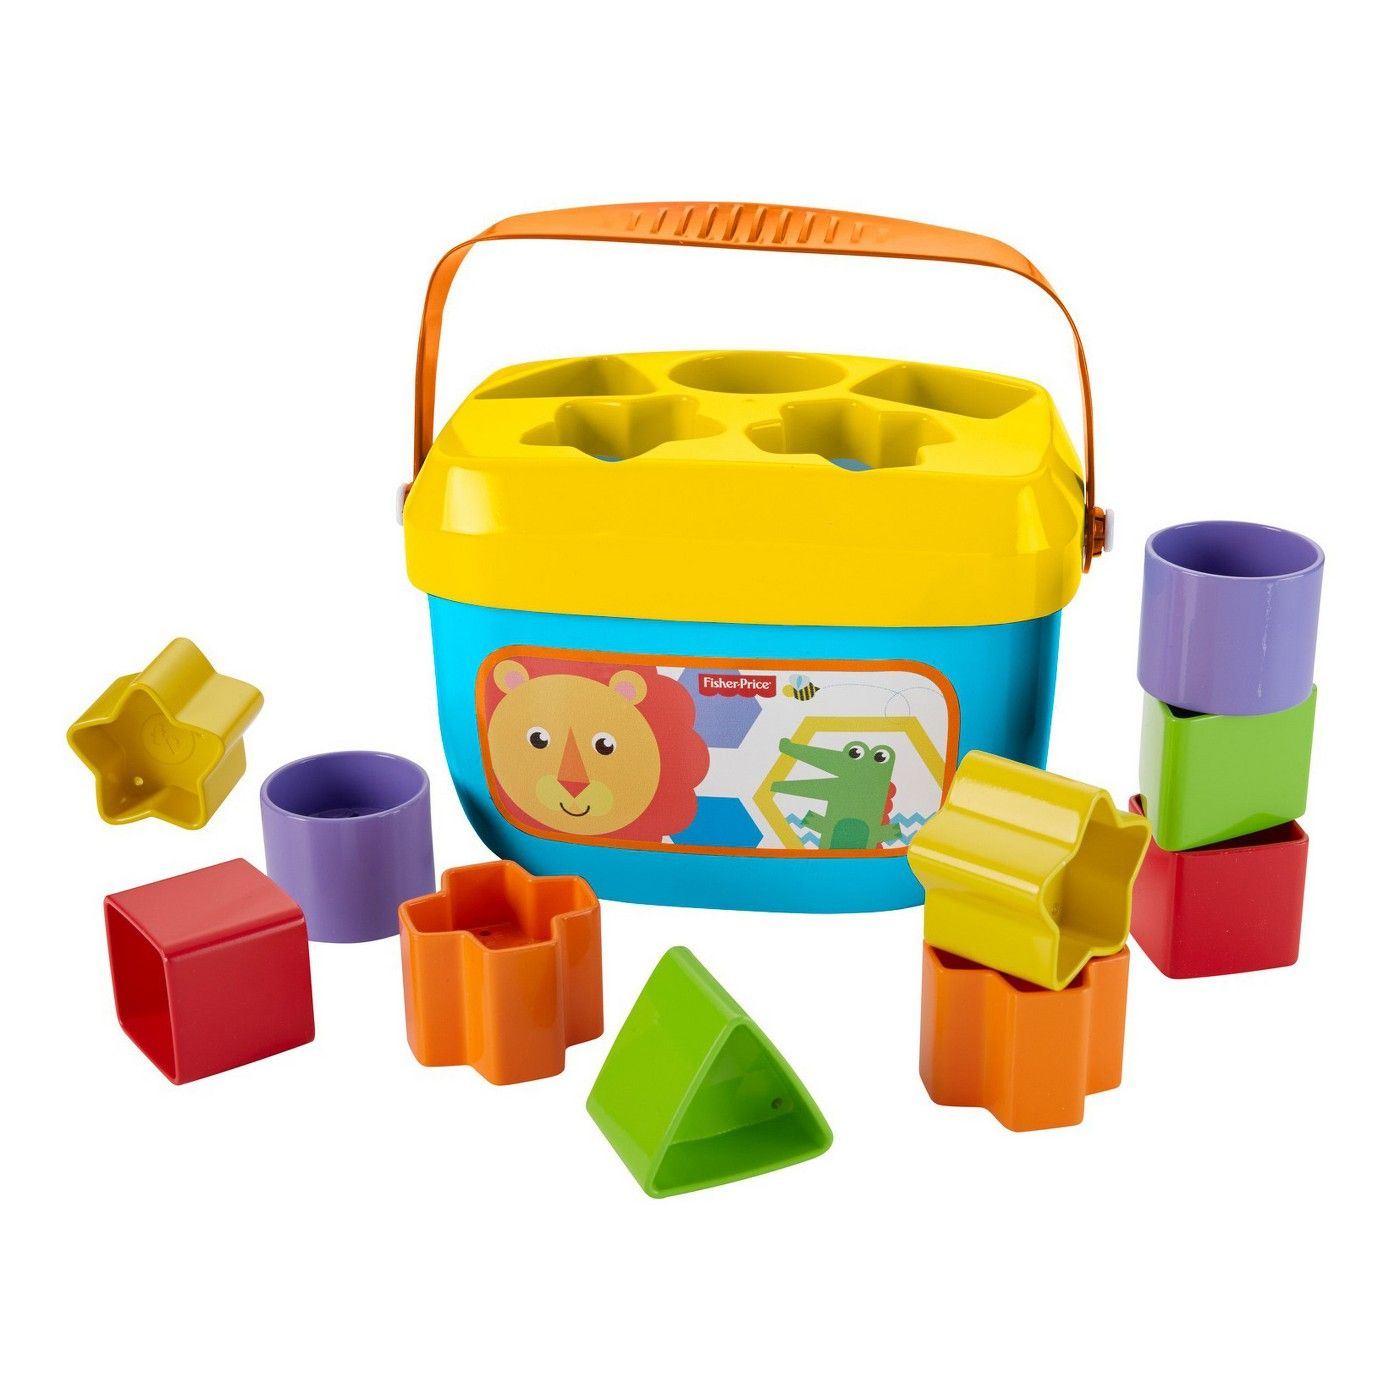 1 year baby toys images  FisherPrice Babyus First Blocks  image  of   Mommies and